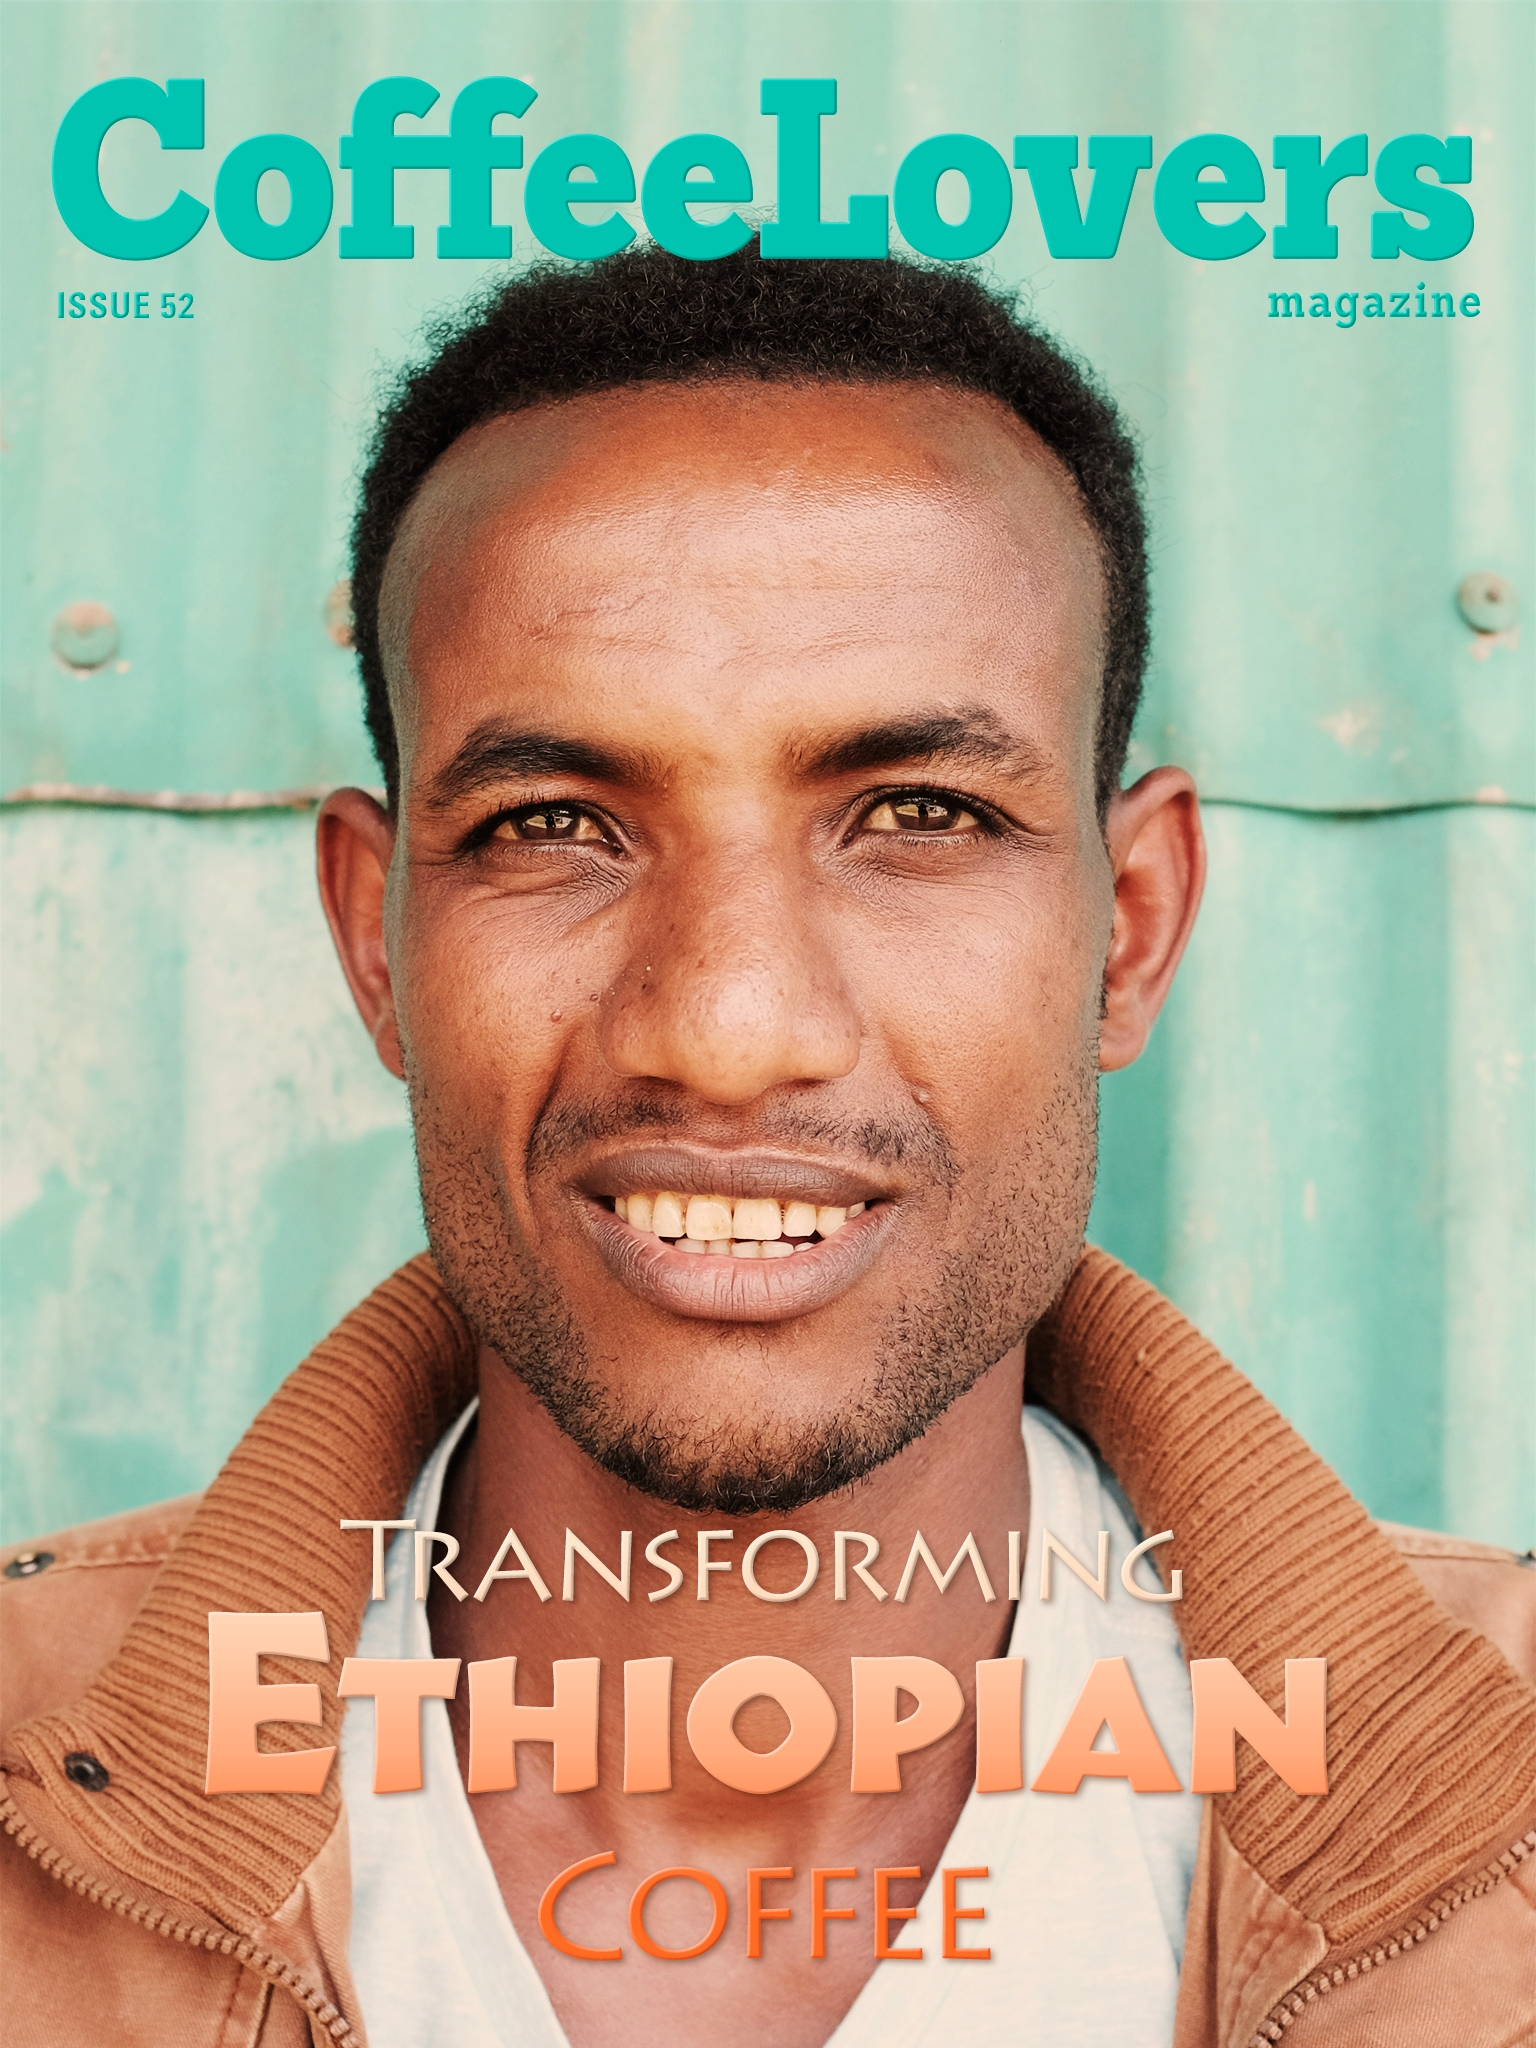 Ethiopian Coffee - Harar - Coffee Lovers Magazine Issue 52